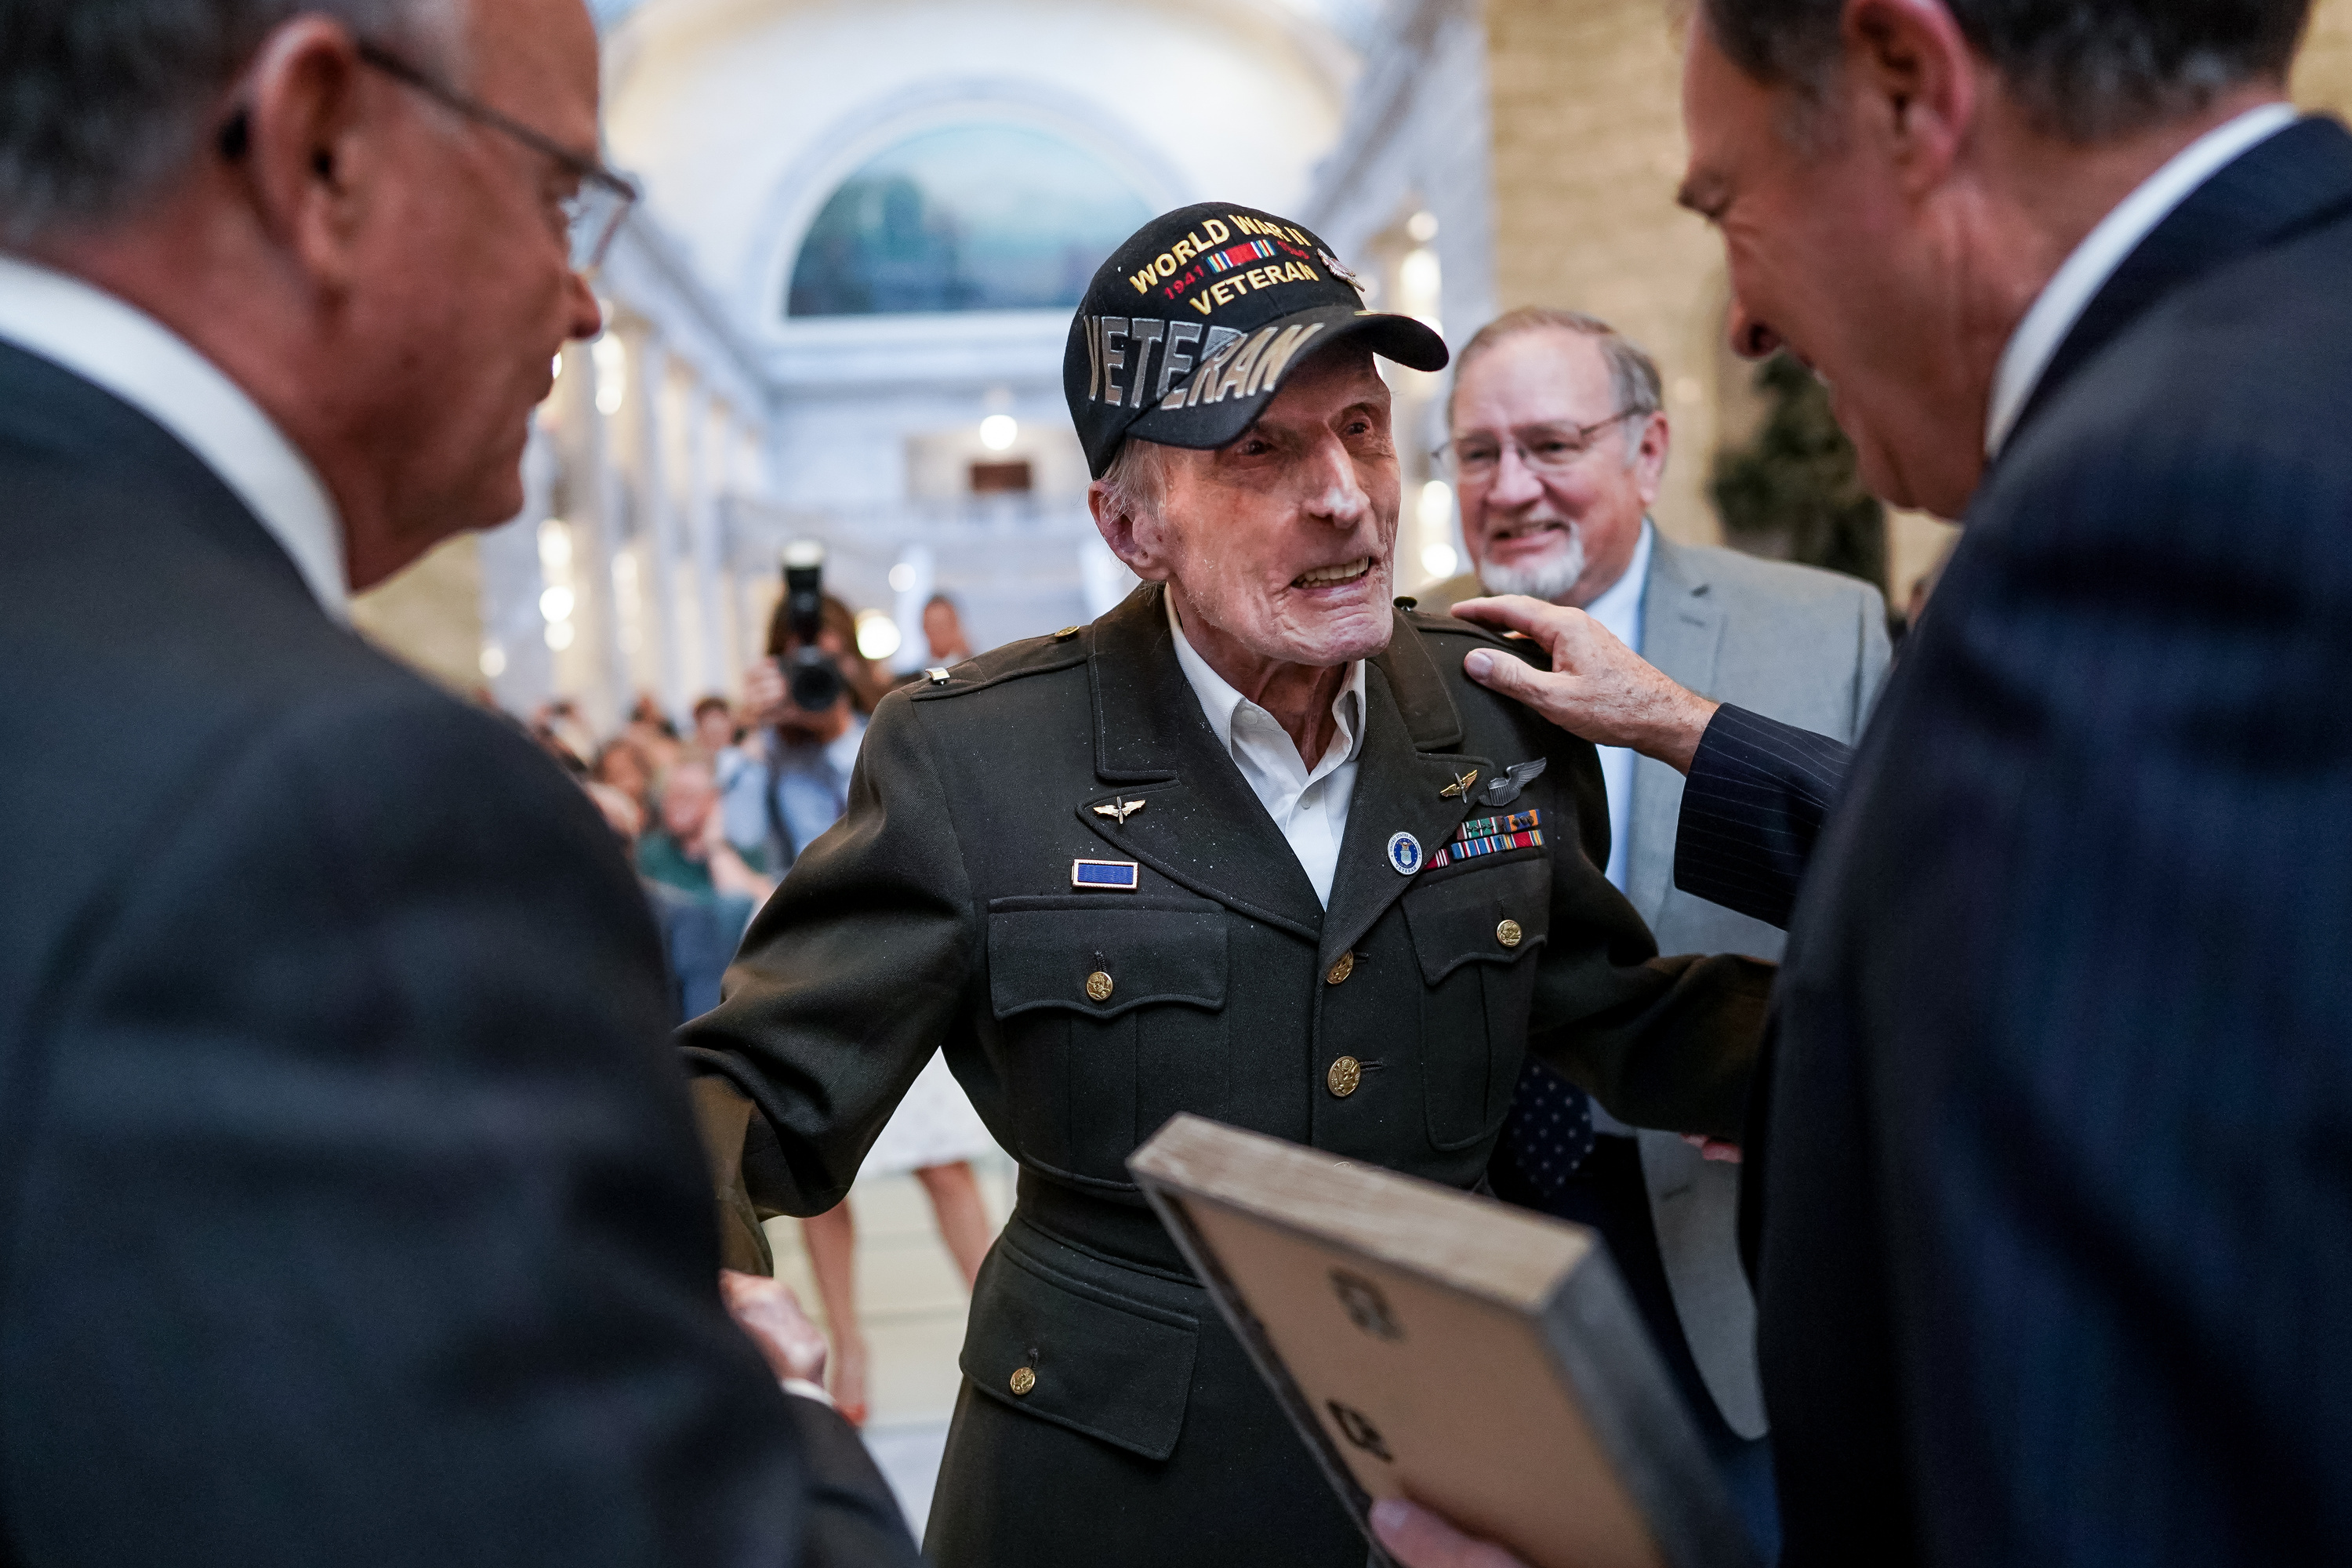 Dan Eastman, 99, greets Utah Senate President Stuart Adams, R-Layton, left, and Gov. Gary Herbert, right, during a ceremony honoring centenarian veterans at the Capitol in Salt Lake City on Tuesday, Nov. 5, 2019. Eastman, wearing his original uniform and accompanied by his son, Alan Eastman, back right, flew an A-20 medium bomber in the Army Air Corps during World War II.